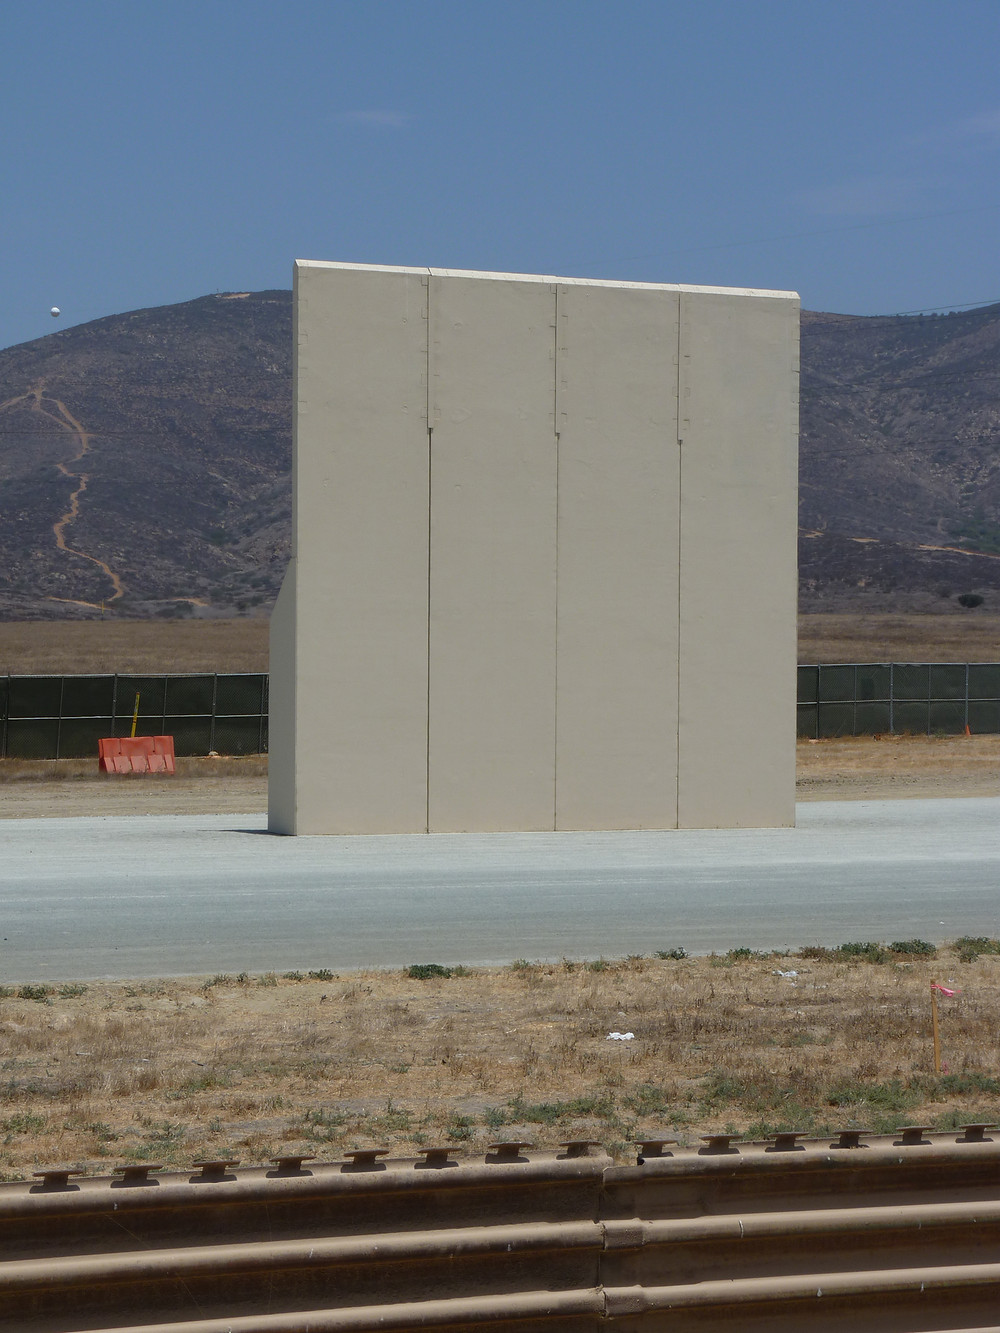 A prototype of the new 30' high border wall President Trump is building along the U.S.-Mexican border.